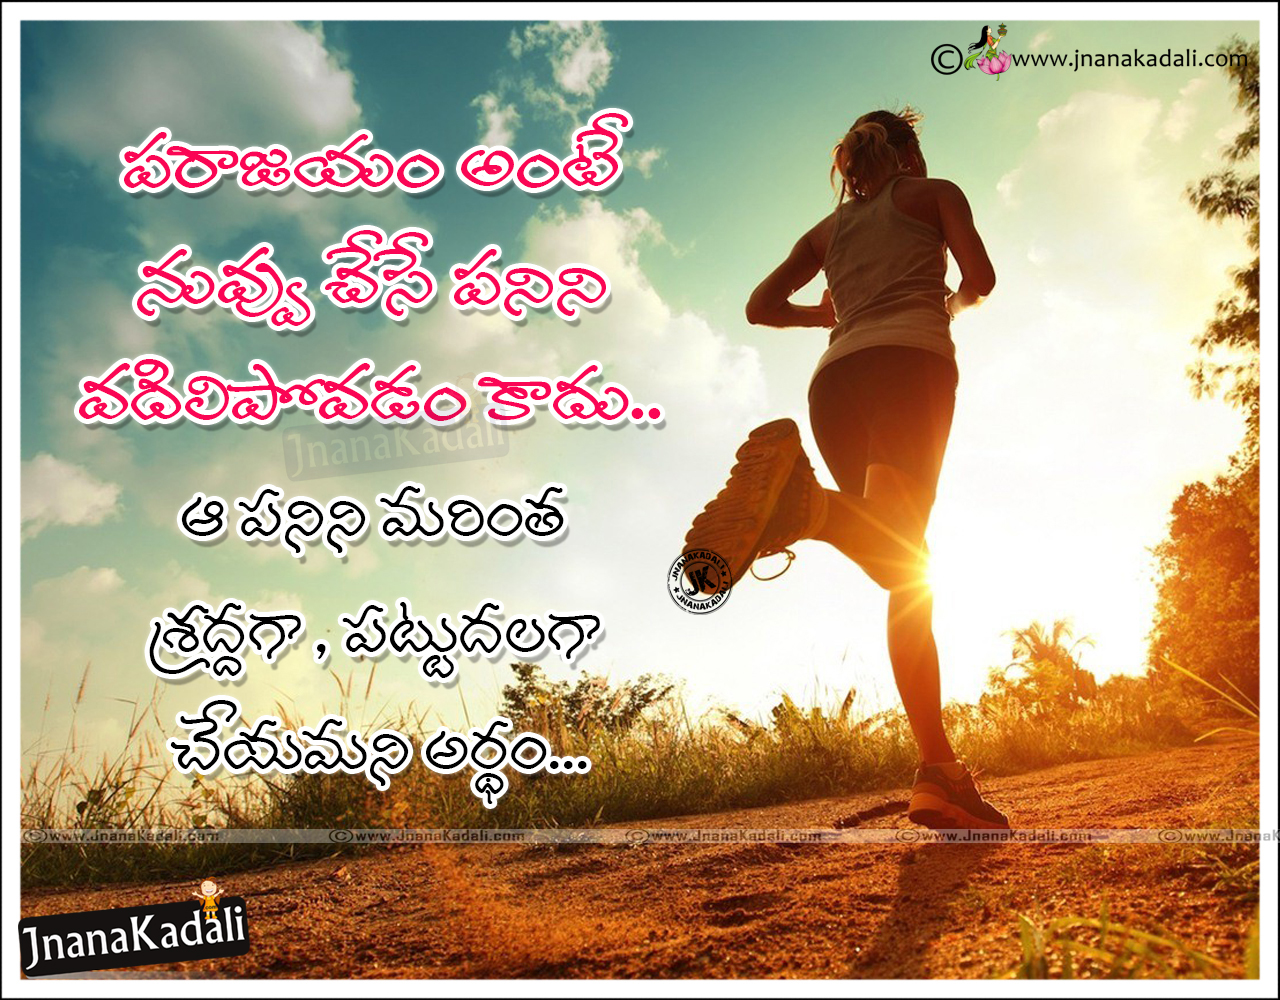 Motivational Quotations Telugu Best 10 Motivational Quotations About Winning In Life